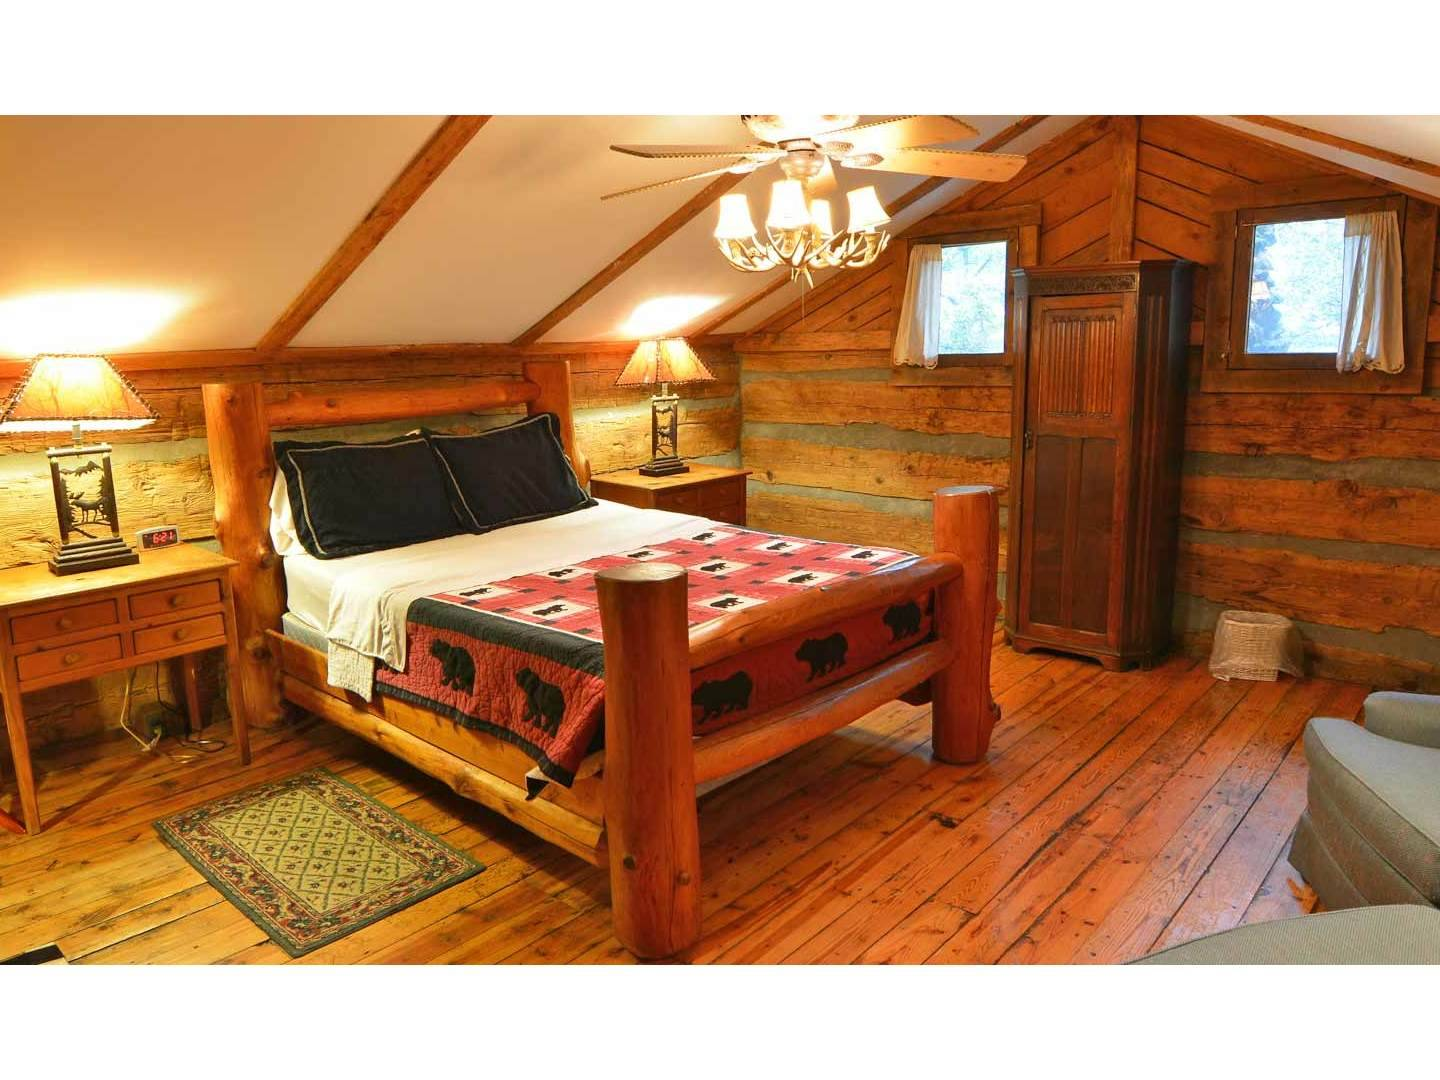 Pilot Mountain Bed and Breakfast